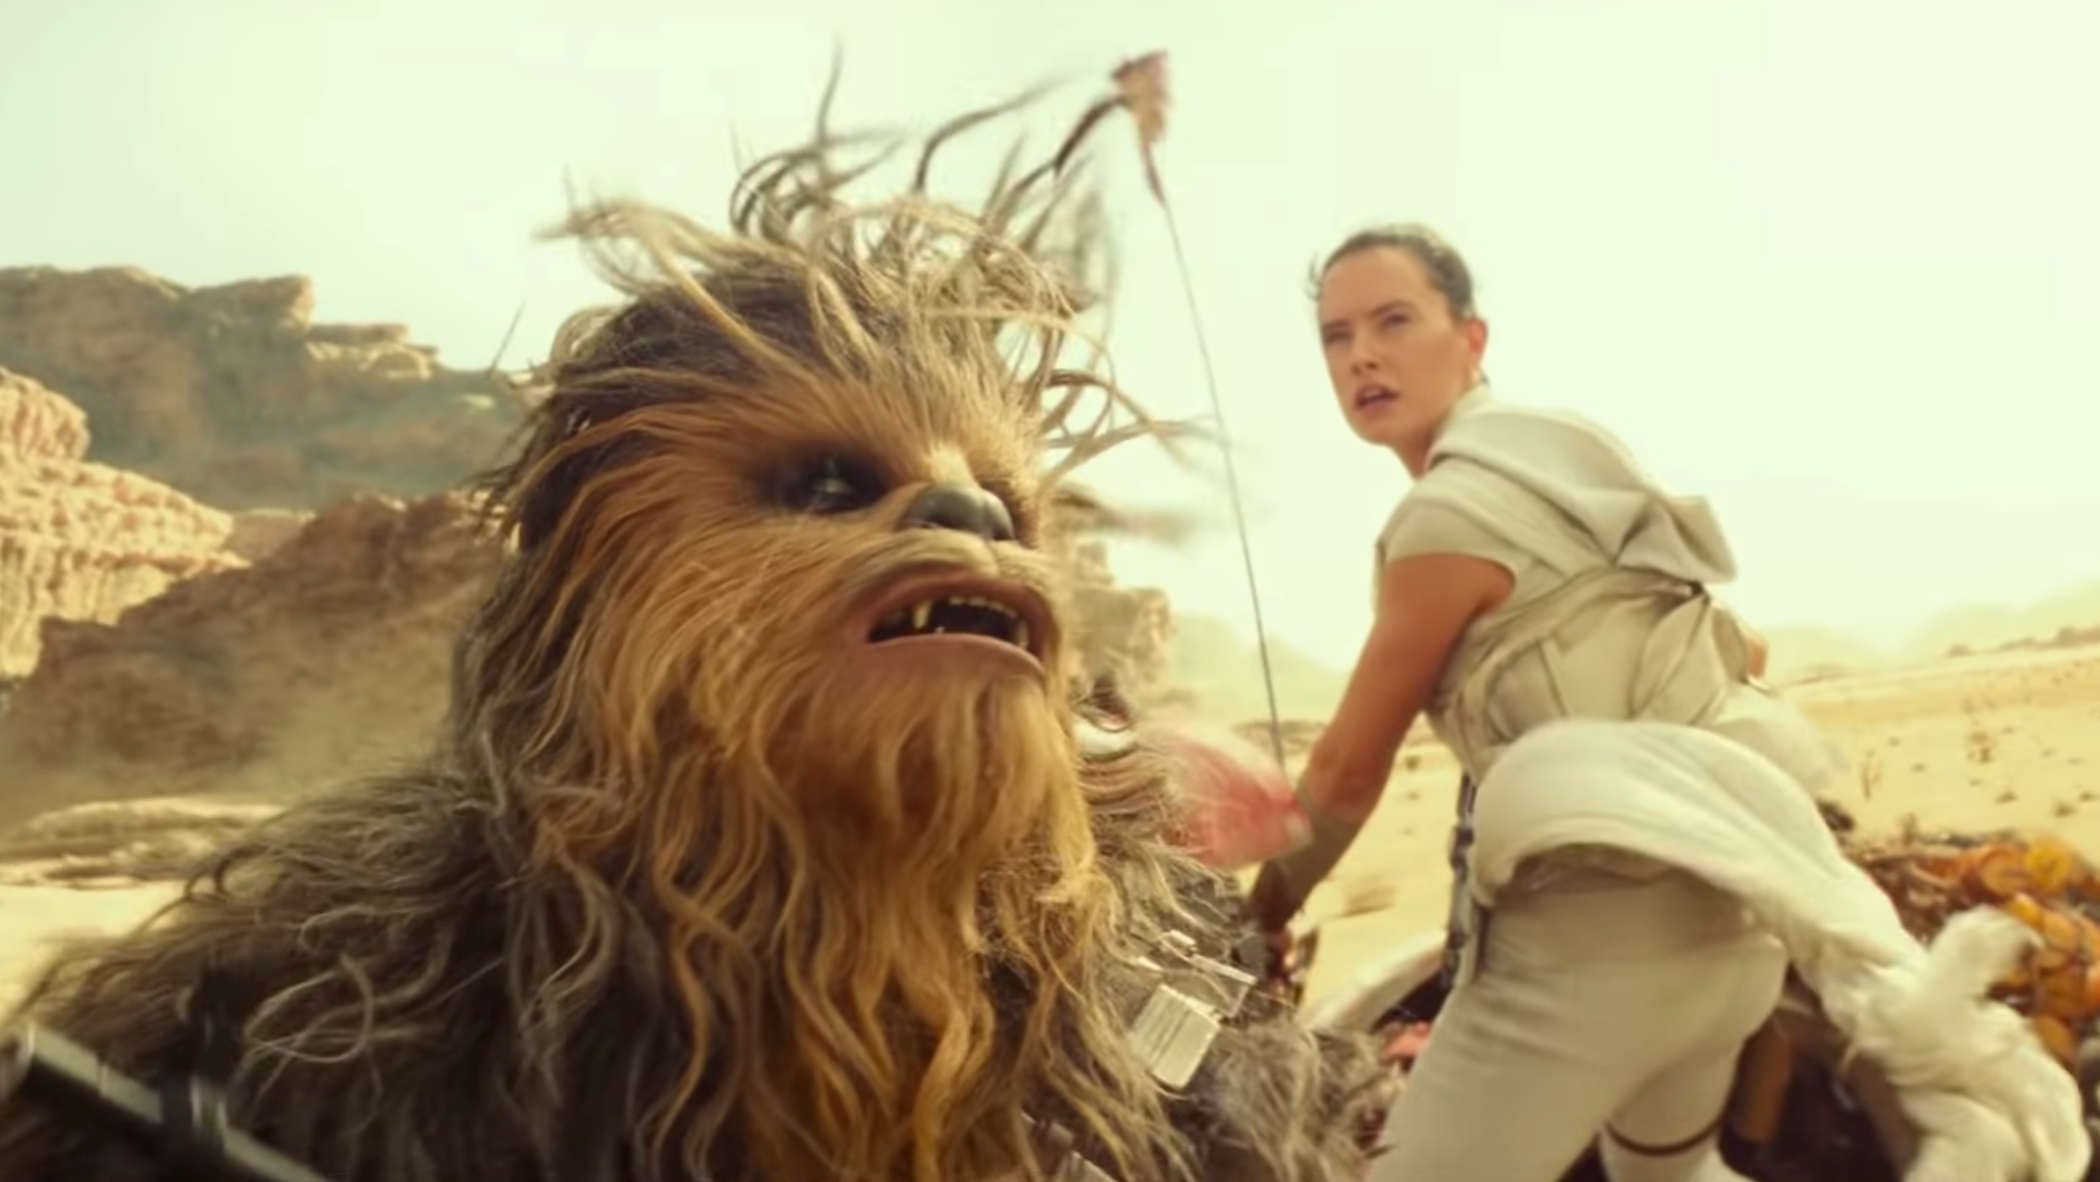 The First Star Wars: The Rise Of Skywalker Clip Shows The Galaxy's Soaring New Threat